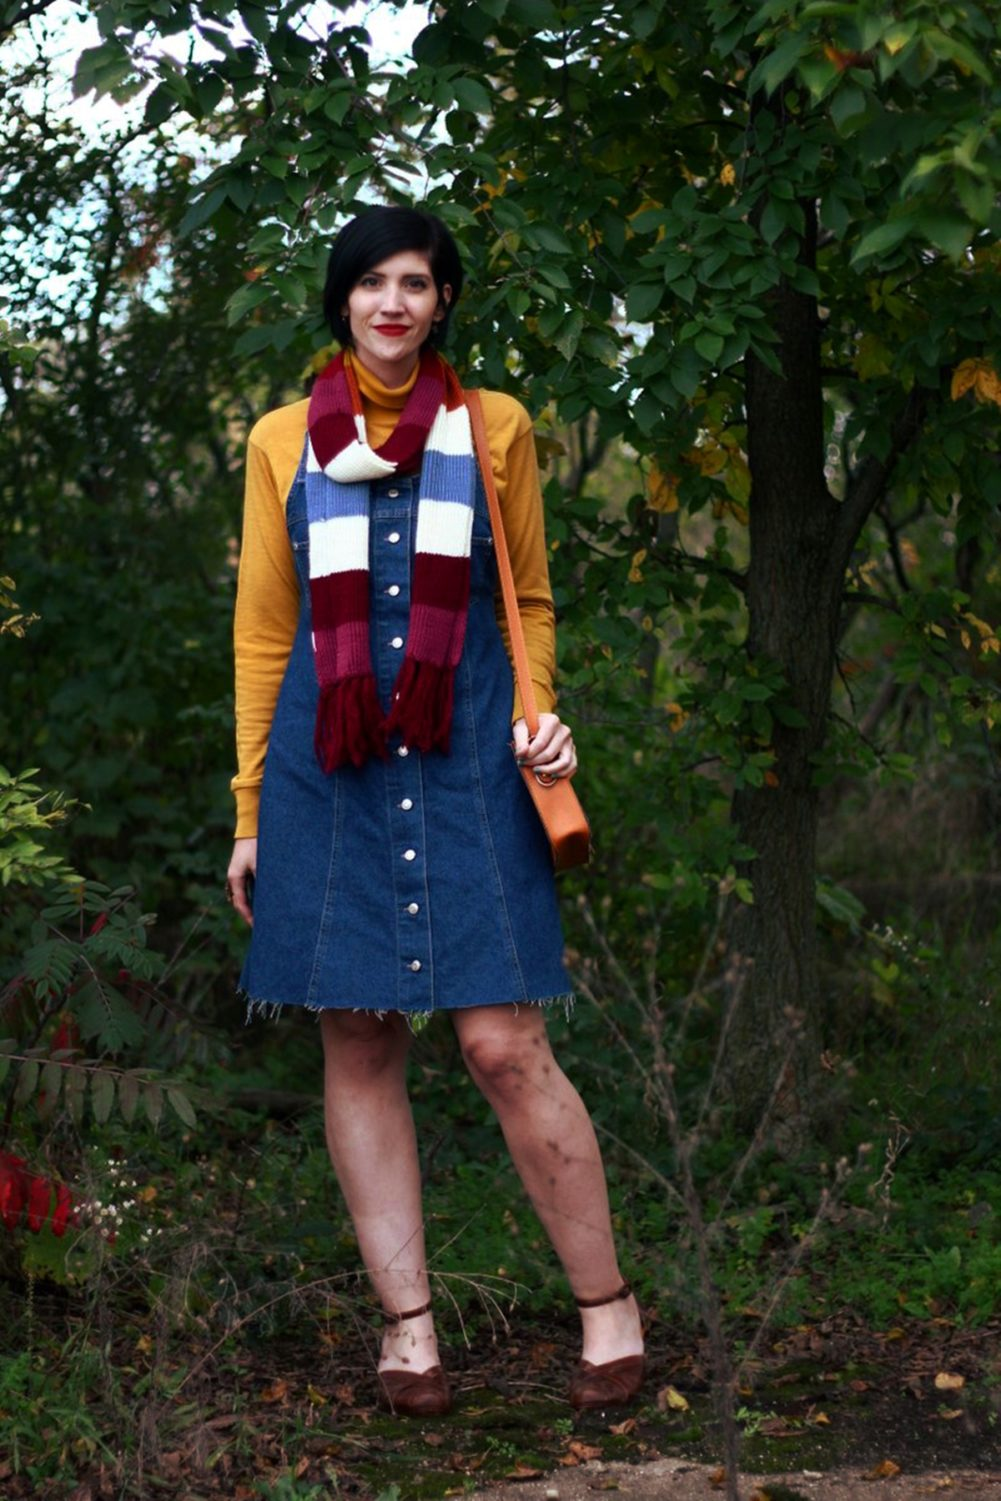 Outfit: Mustard yellow turtleneck, denim overall dress, multi-colored striped scarf, red lipstick, orange fox handbag, brown platforms